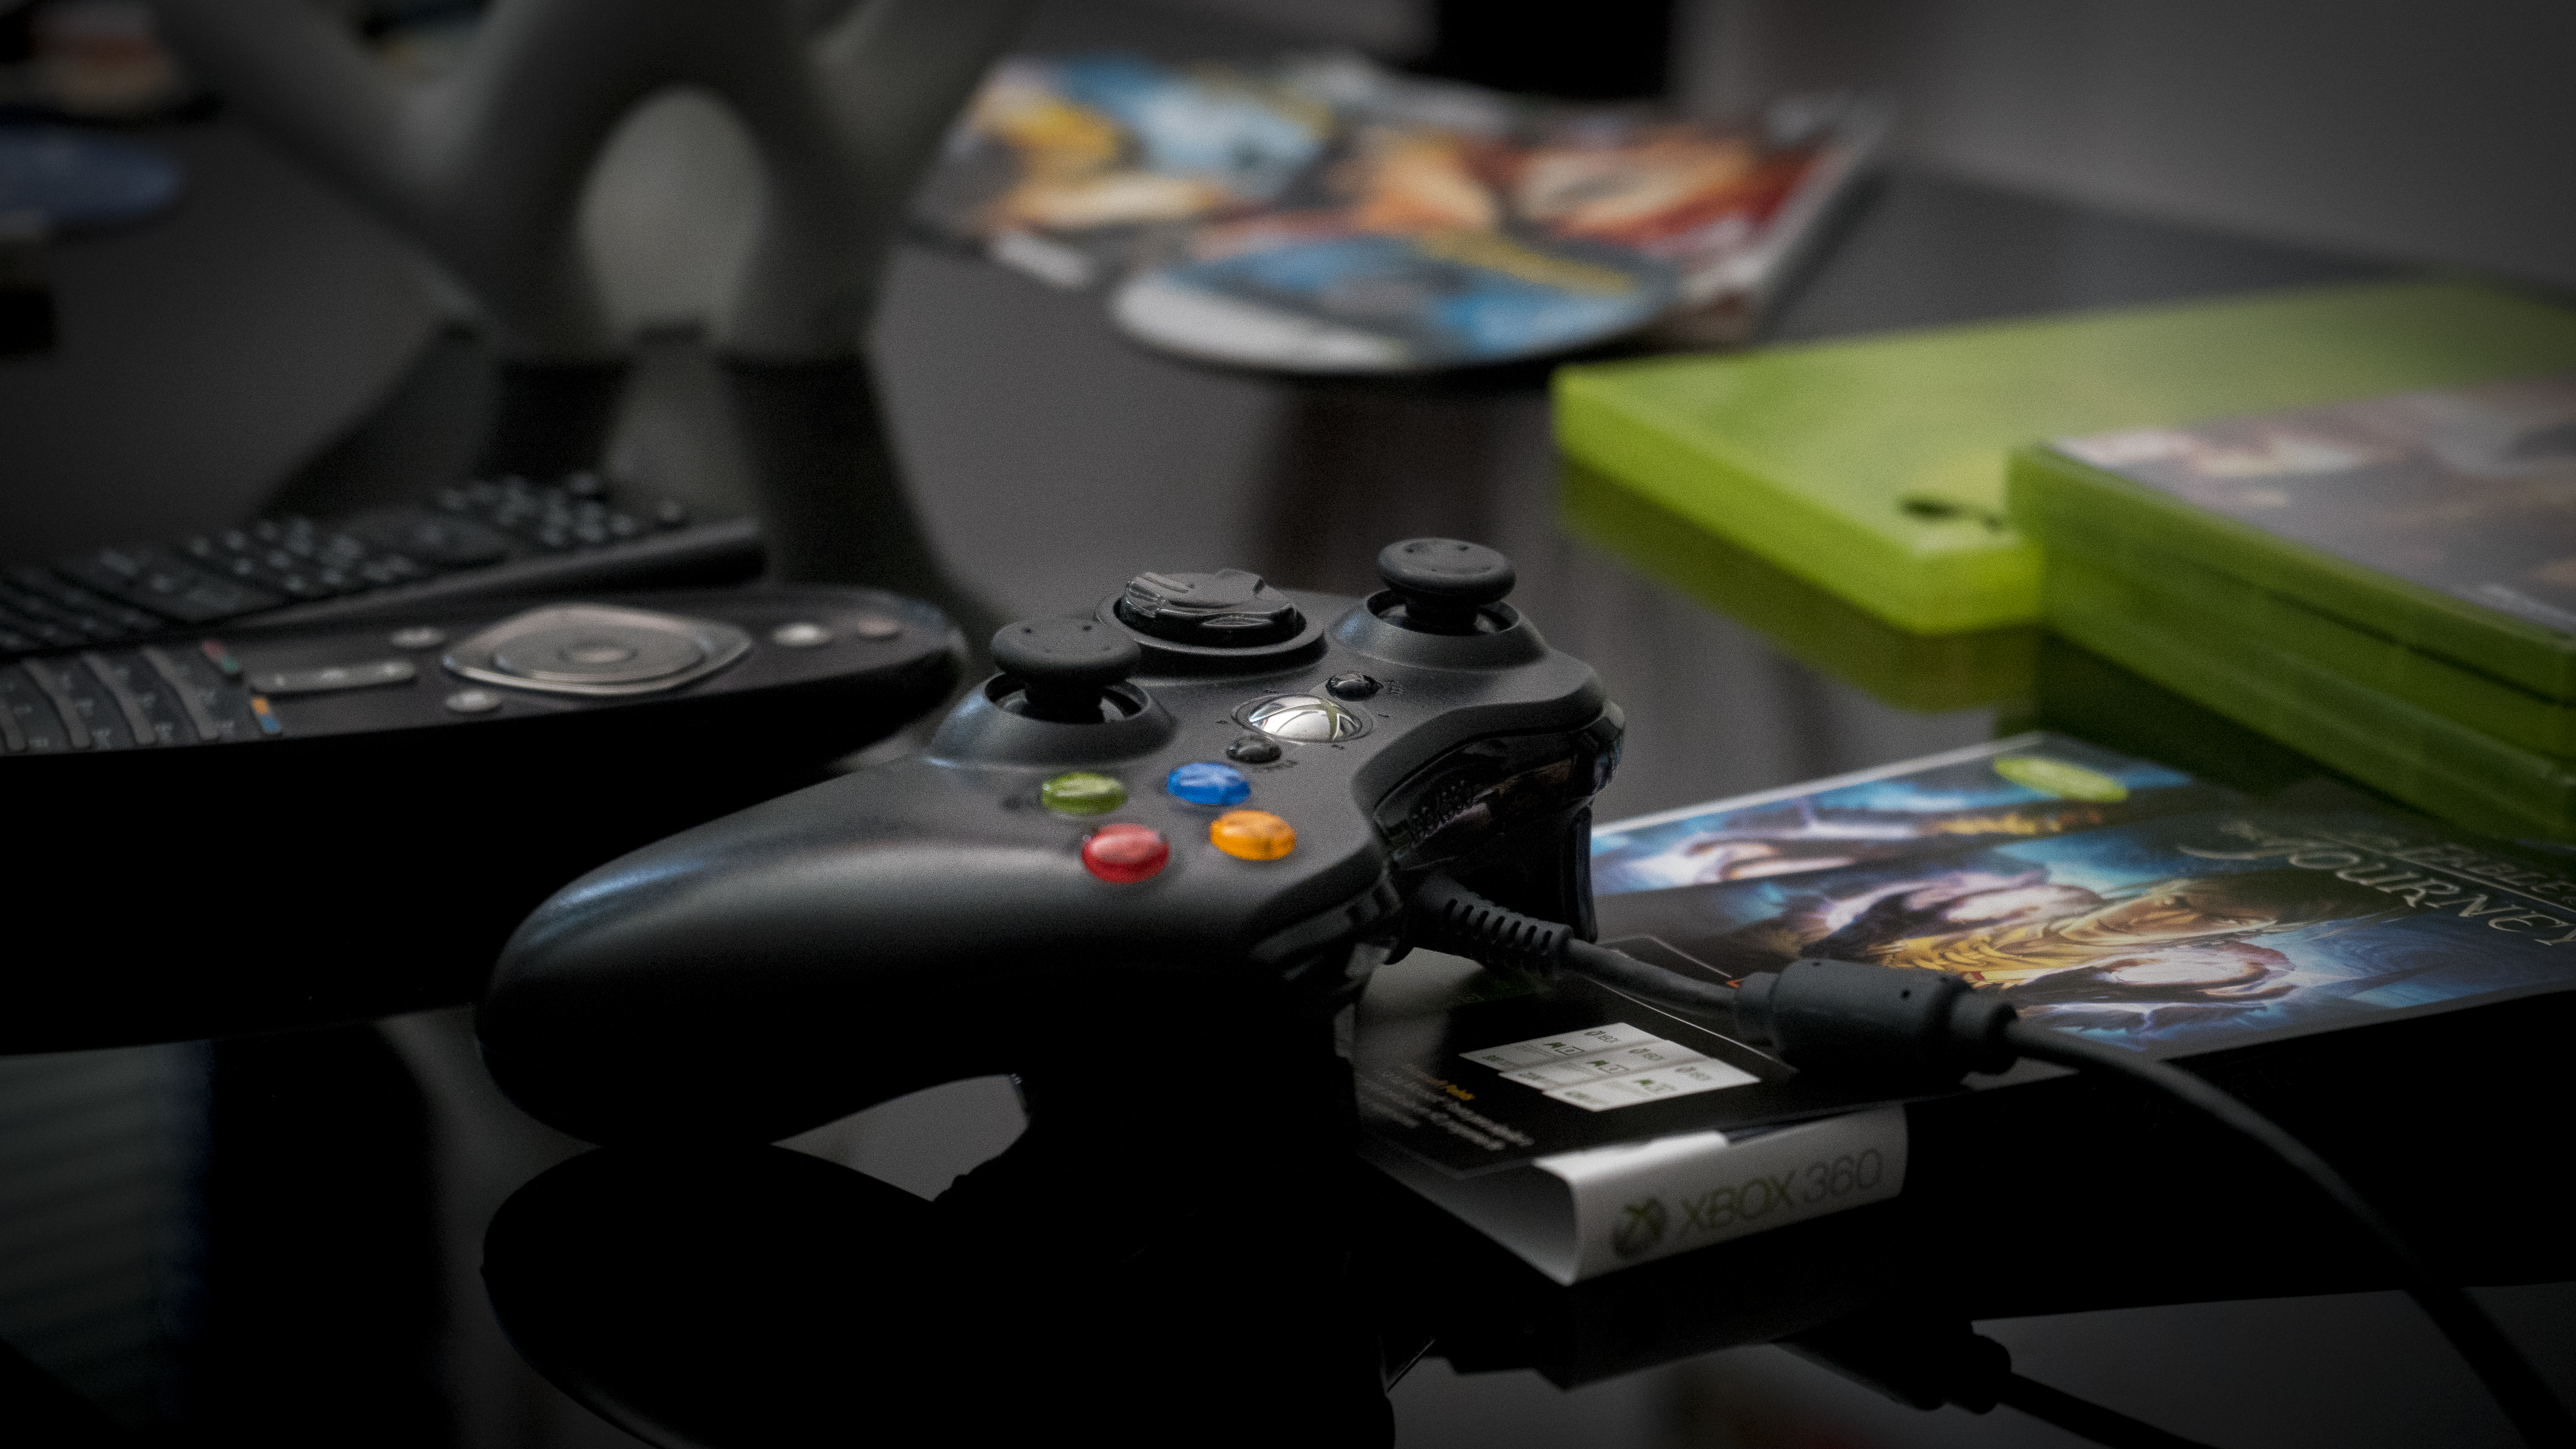 New Xbox: Release Date, Price, Specs, & Games for Microsoft